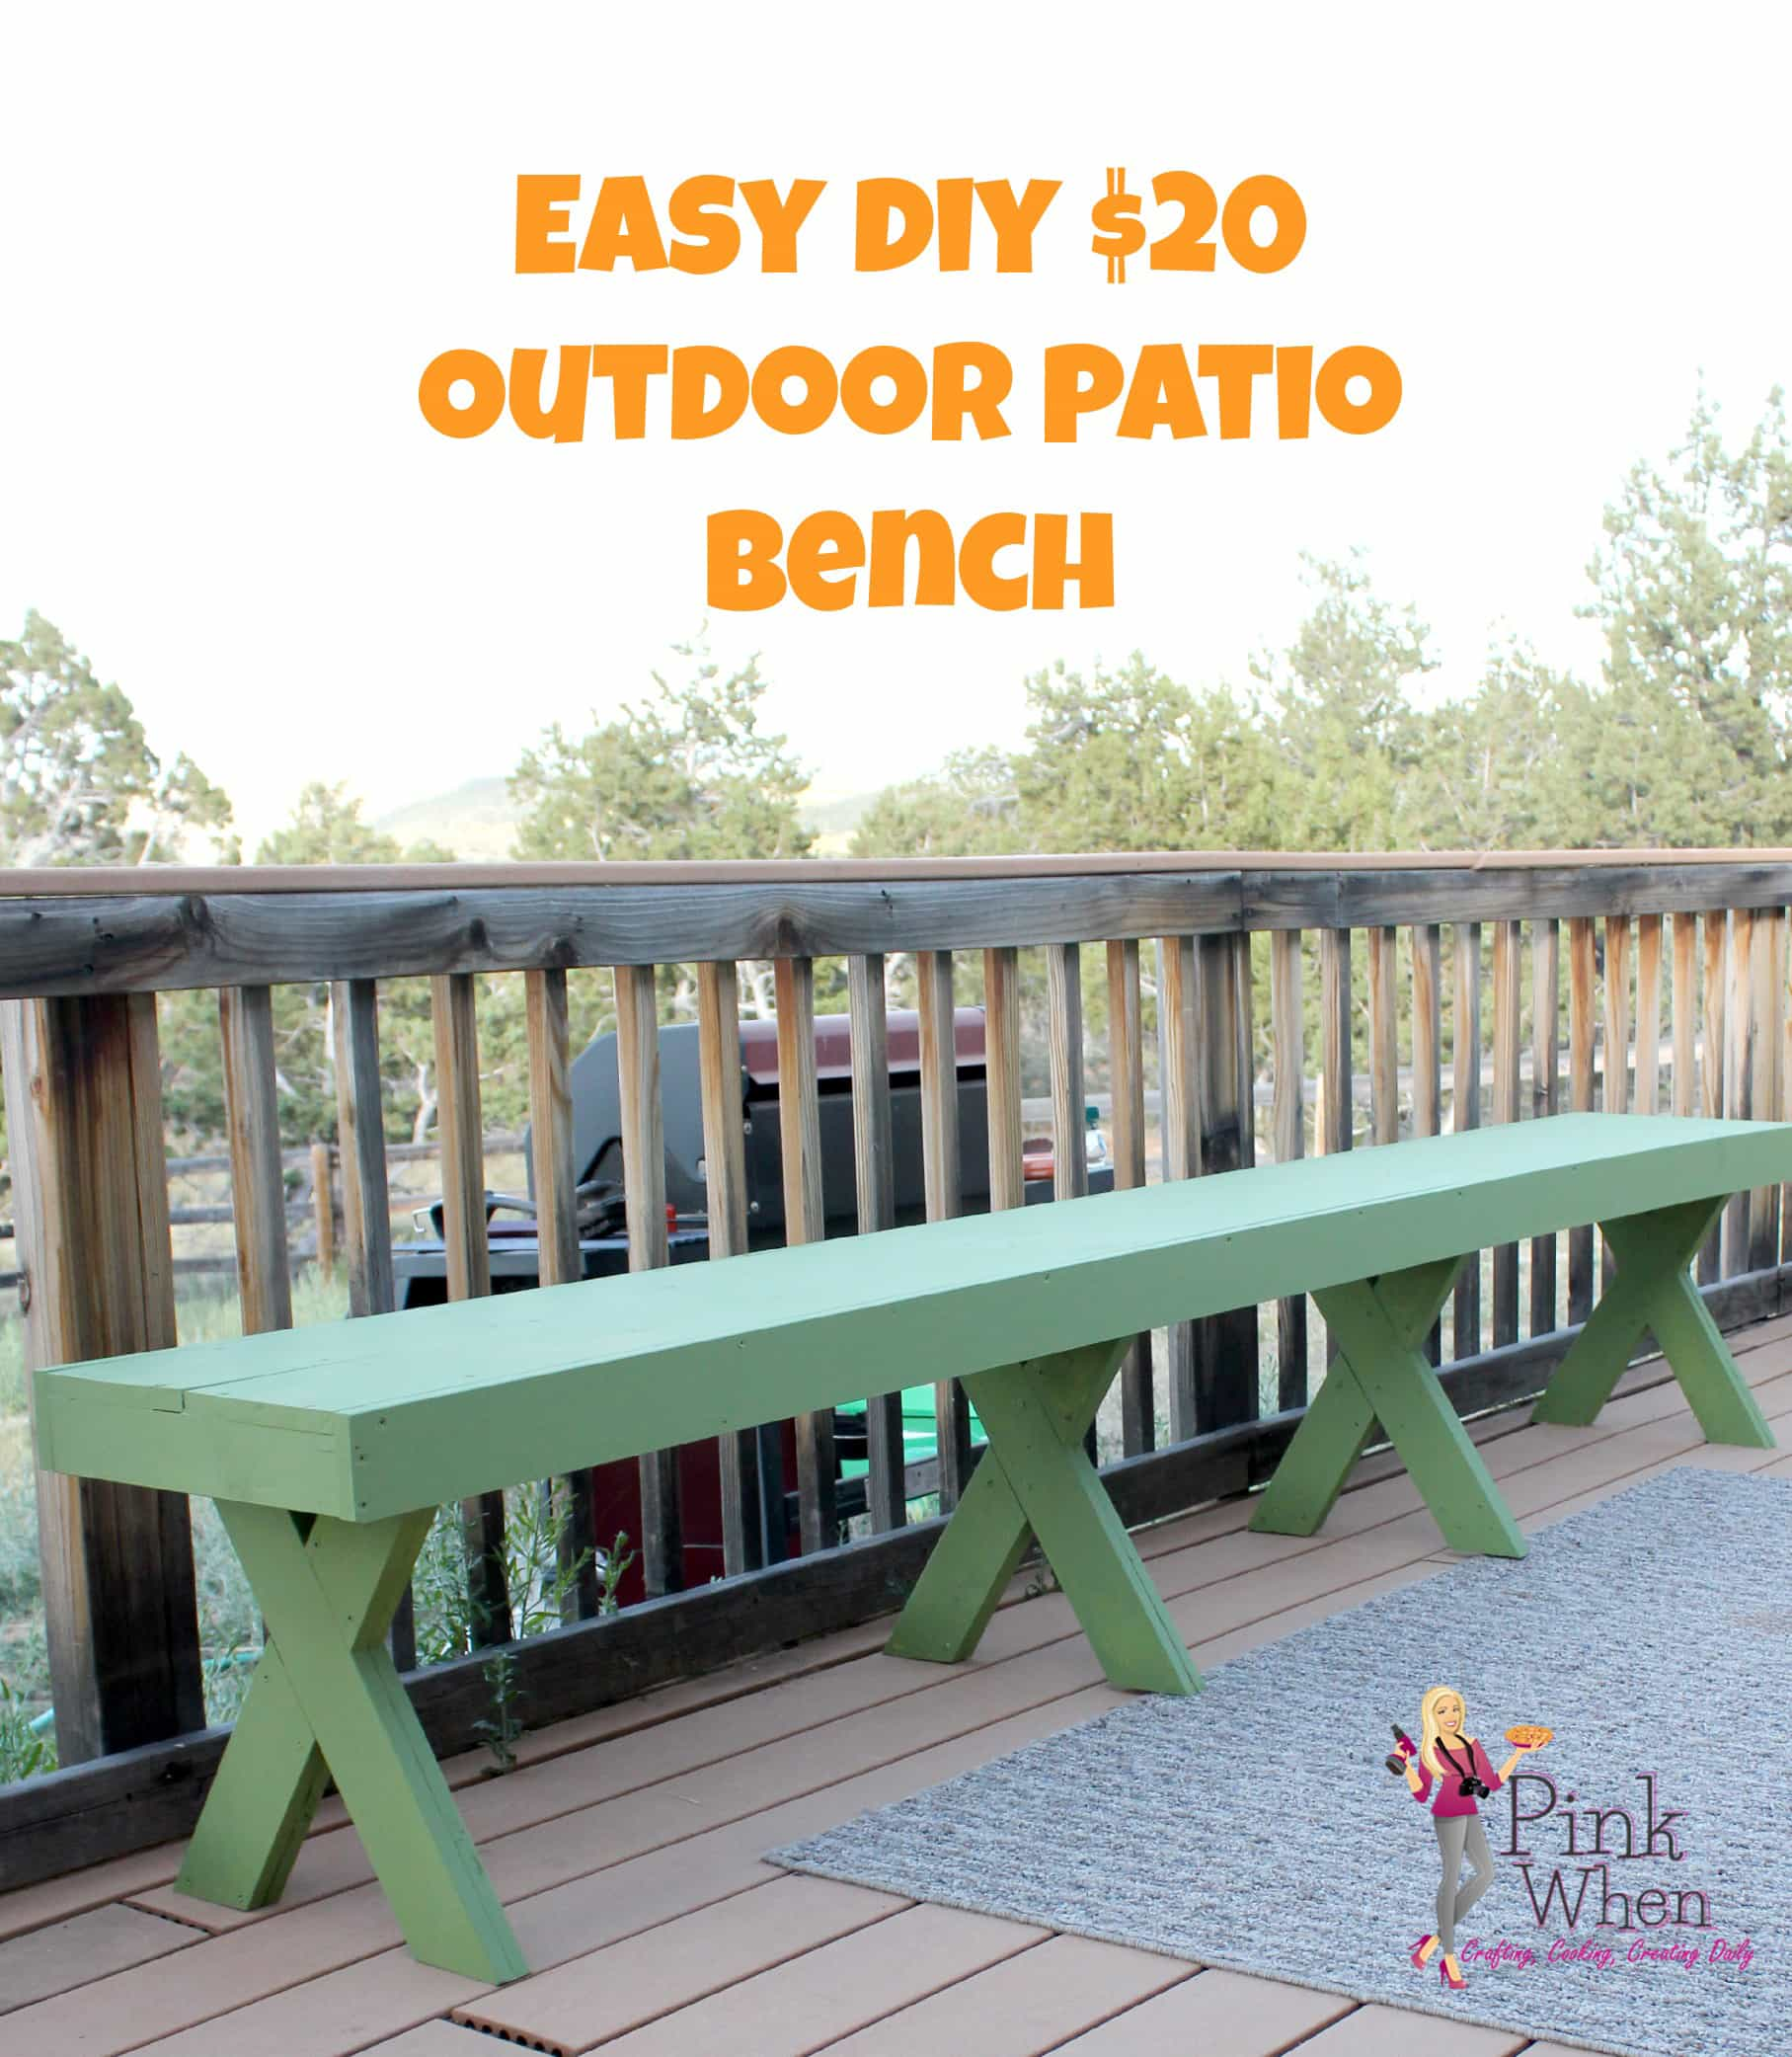 Easy DIY $20 Outdoor Patio Bench Via PinkWhen.com